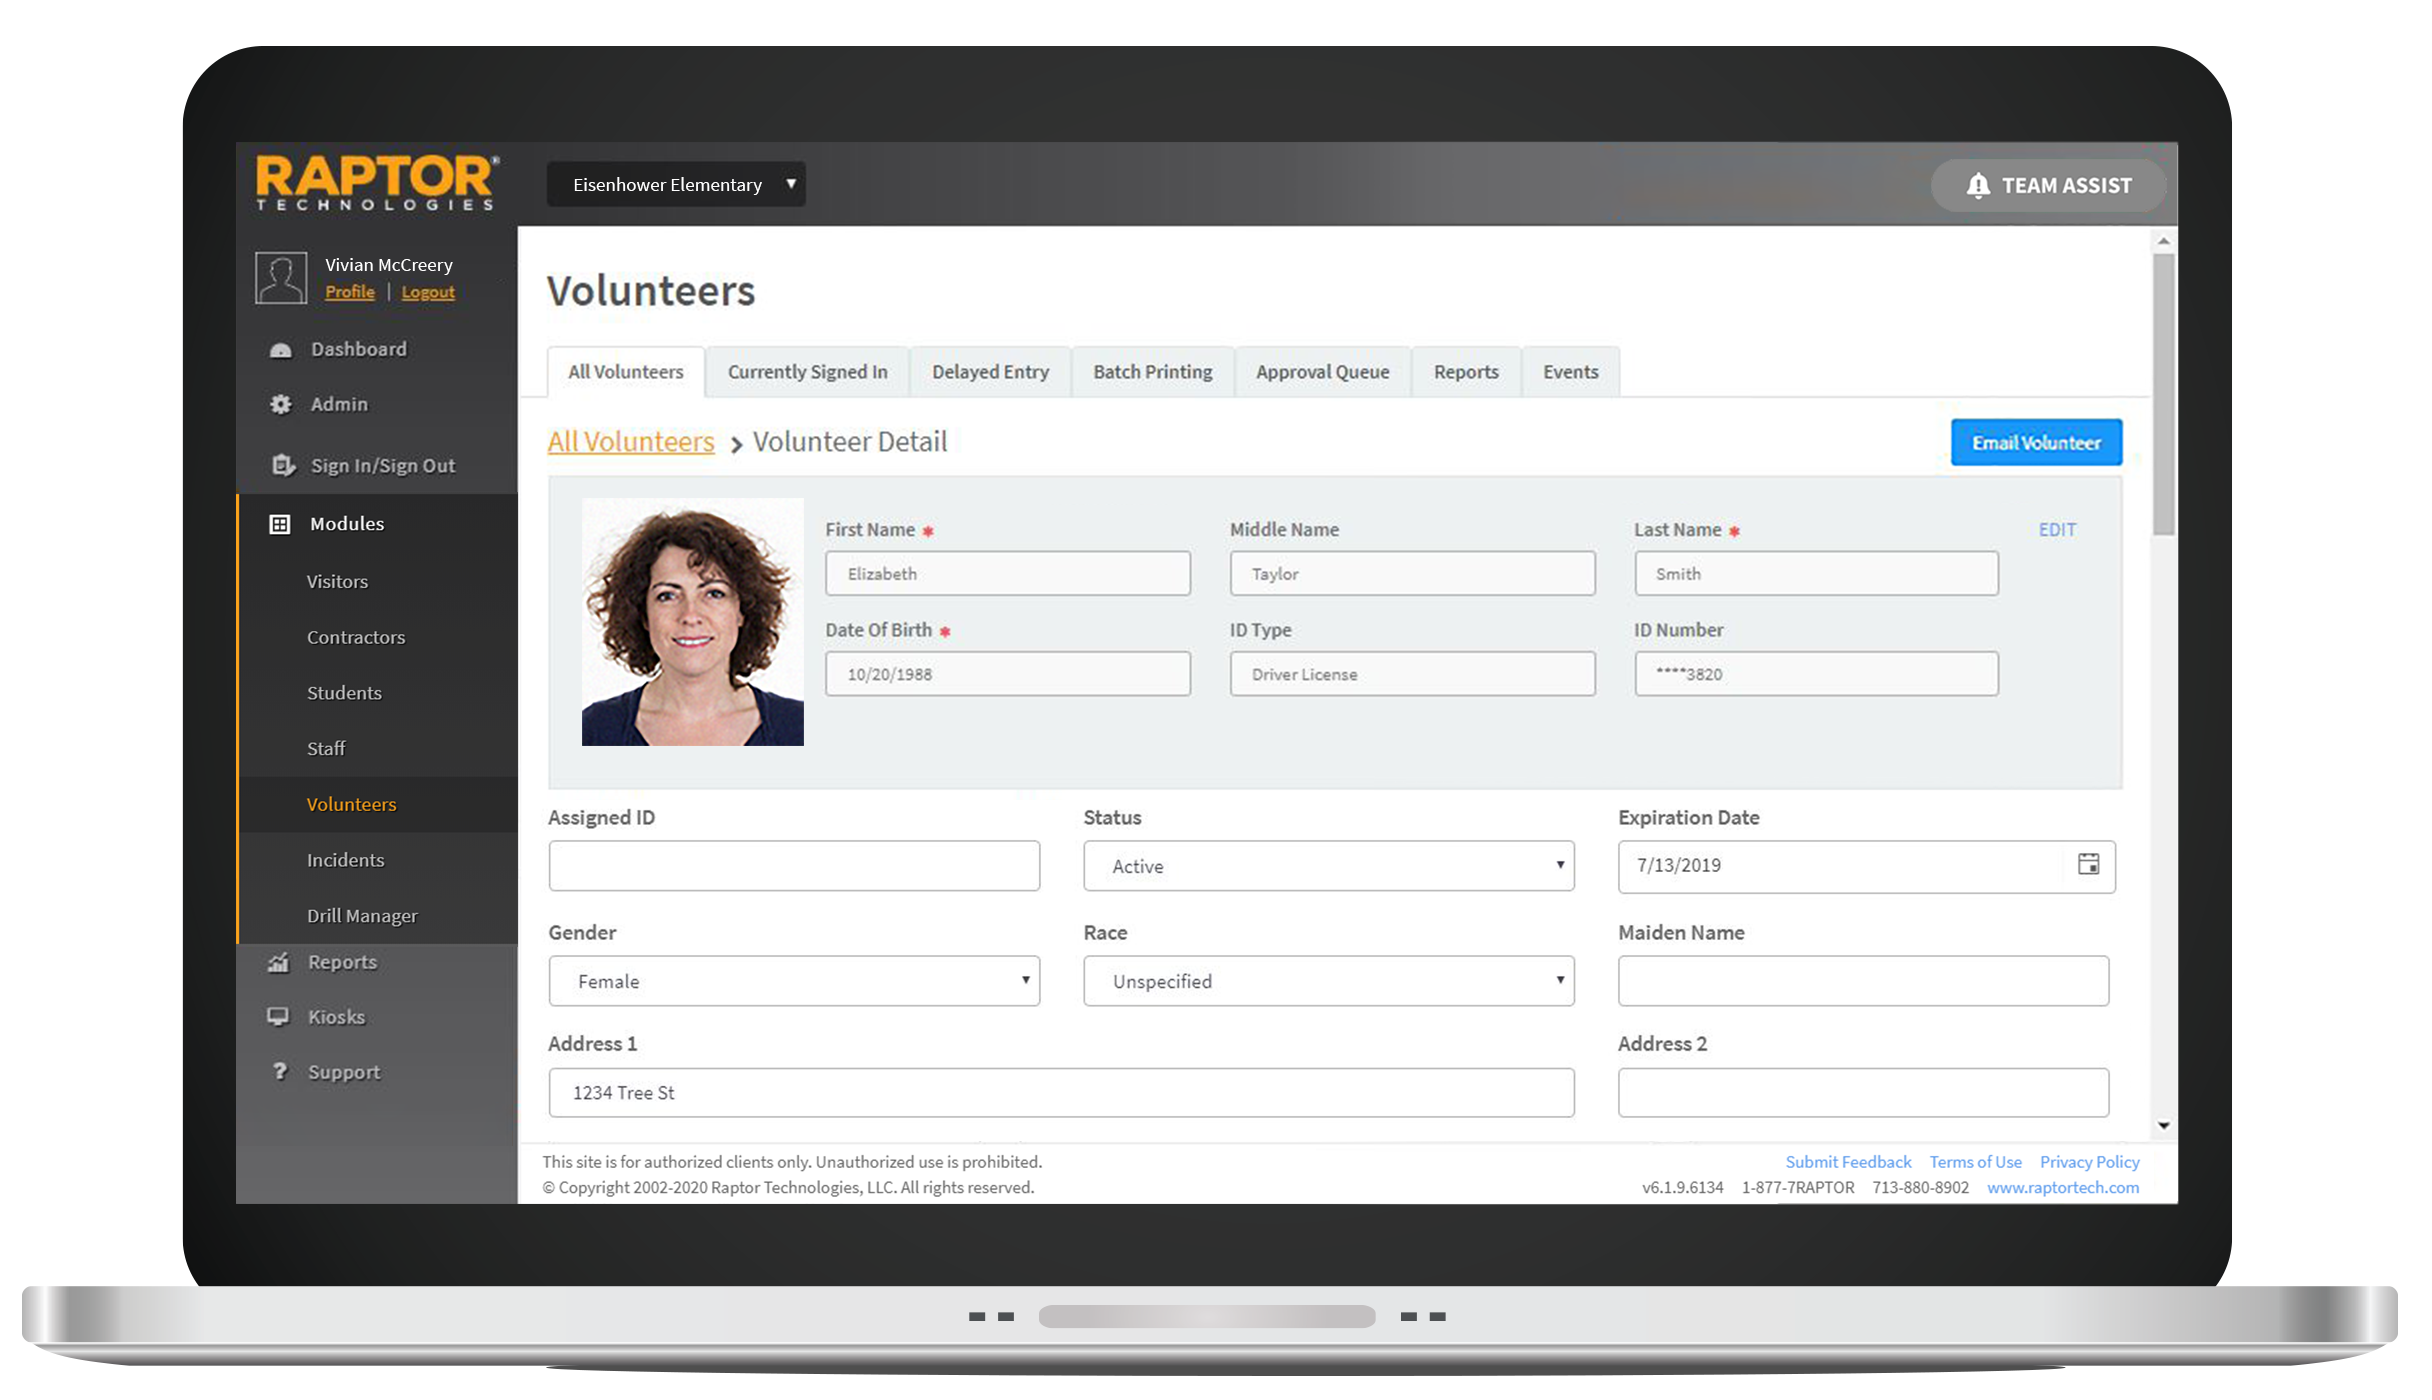 User-friendly volunteer management software that includes an integrated online volunteer application, full criminal background checks, volunteer hour tracking, event management, and robust reporting.